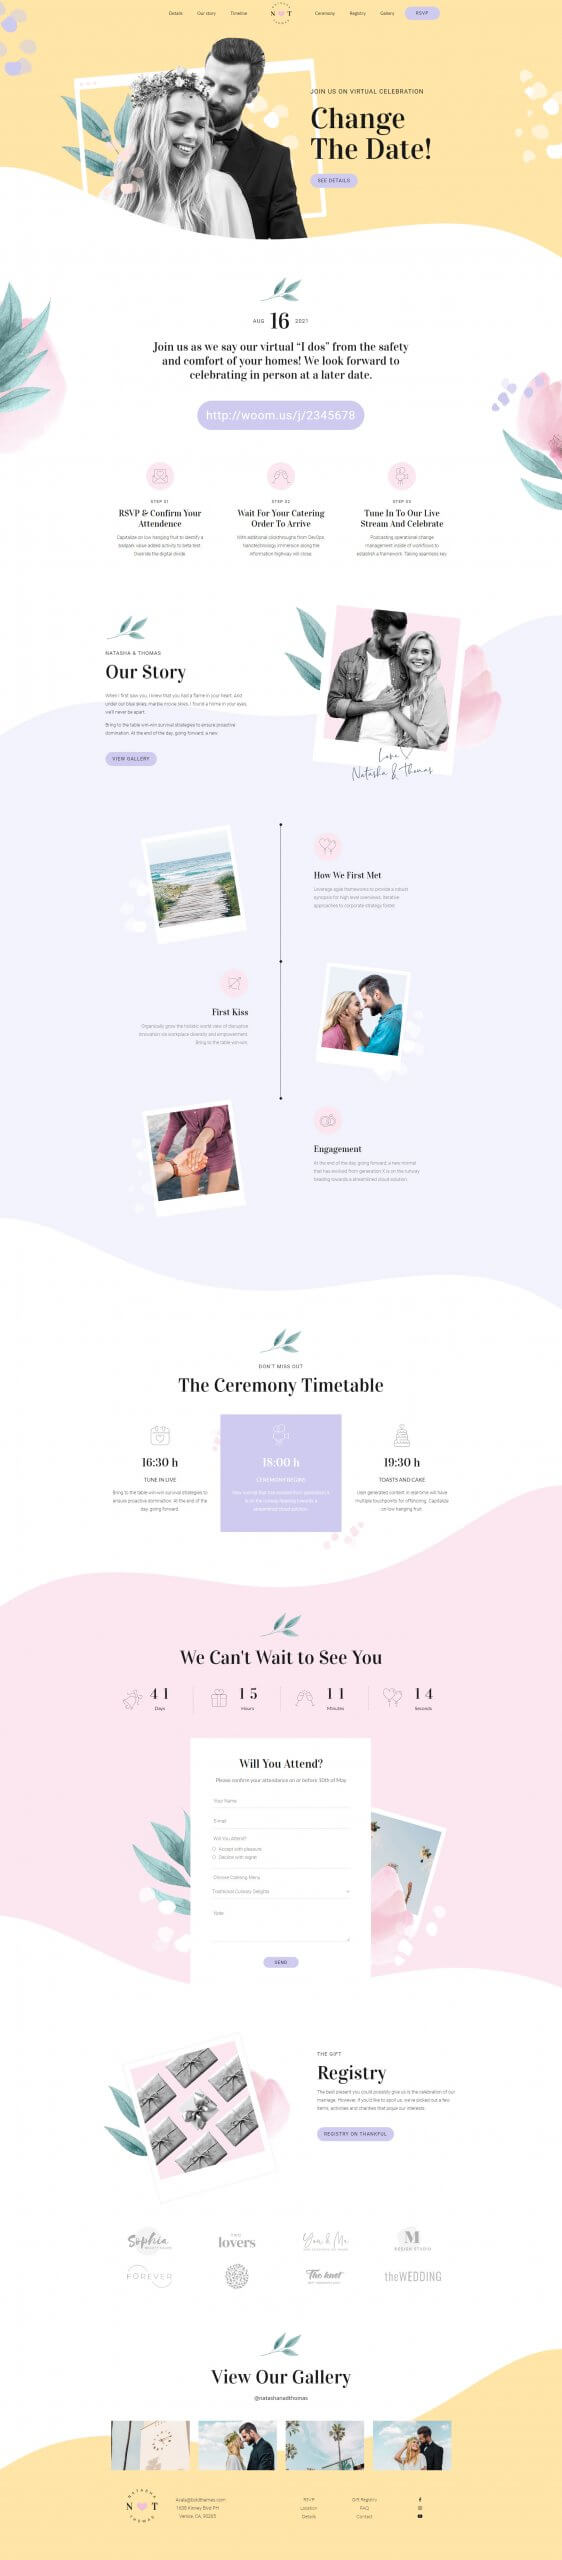 http://avala.bold-themes.com/wp-content/uploads/2021/02/Summer-Home-03-scaled.jpg